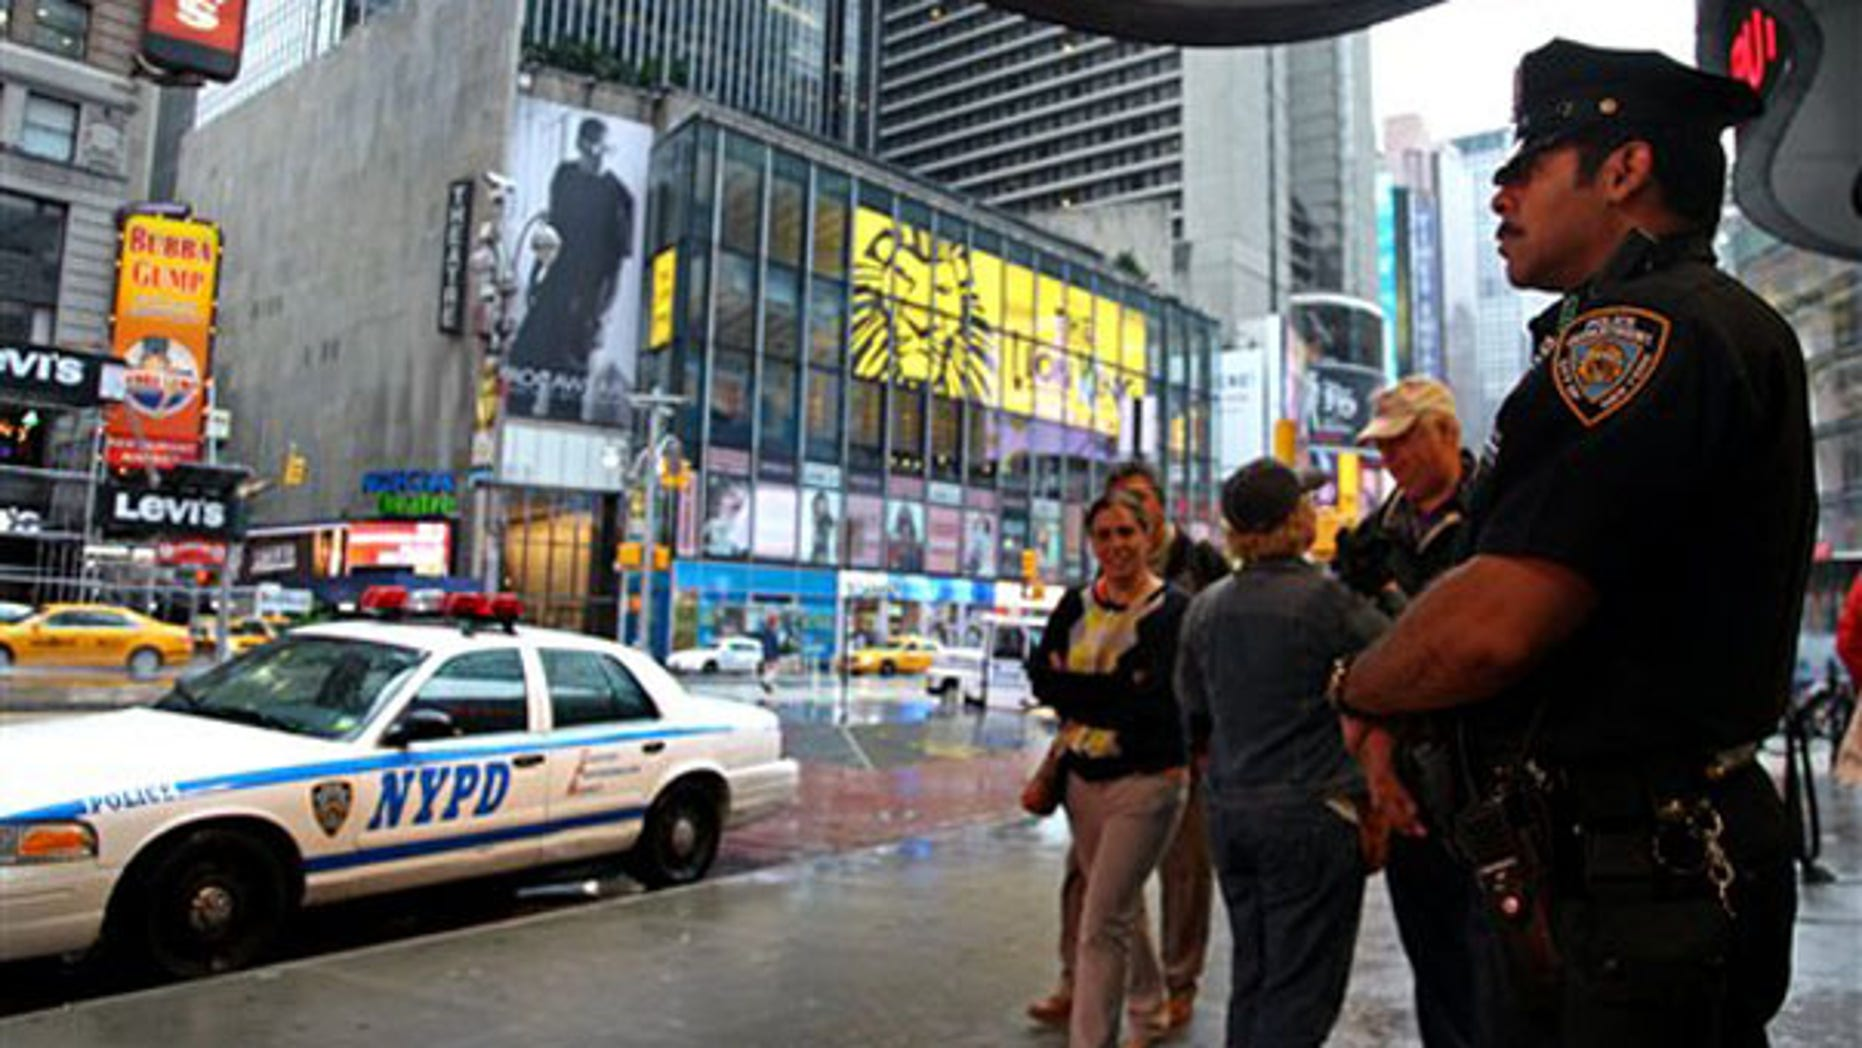 A New York City police officer stands watch in Times Square May 3 as pedestrians pass by. (AP Photo)